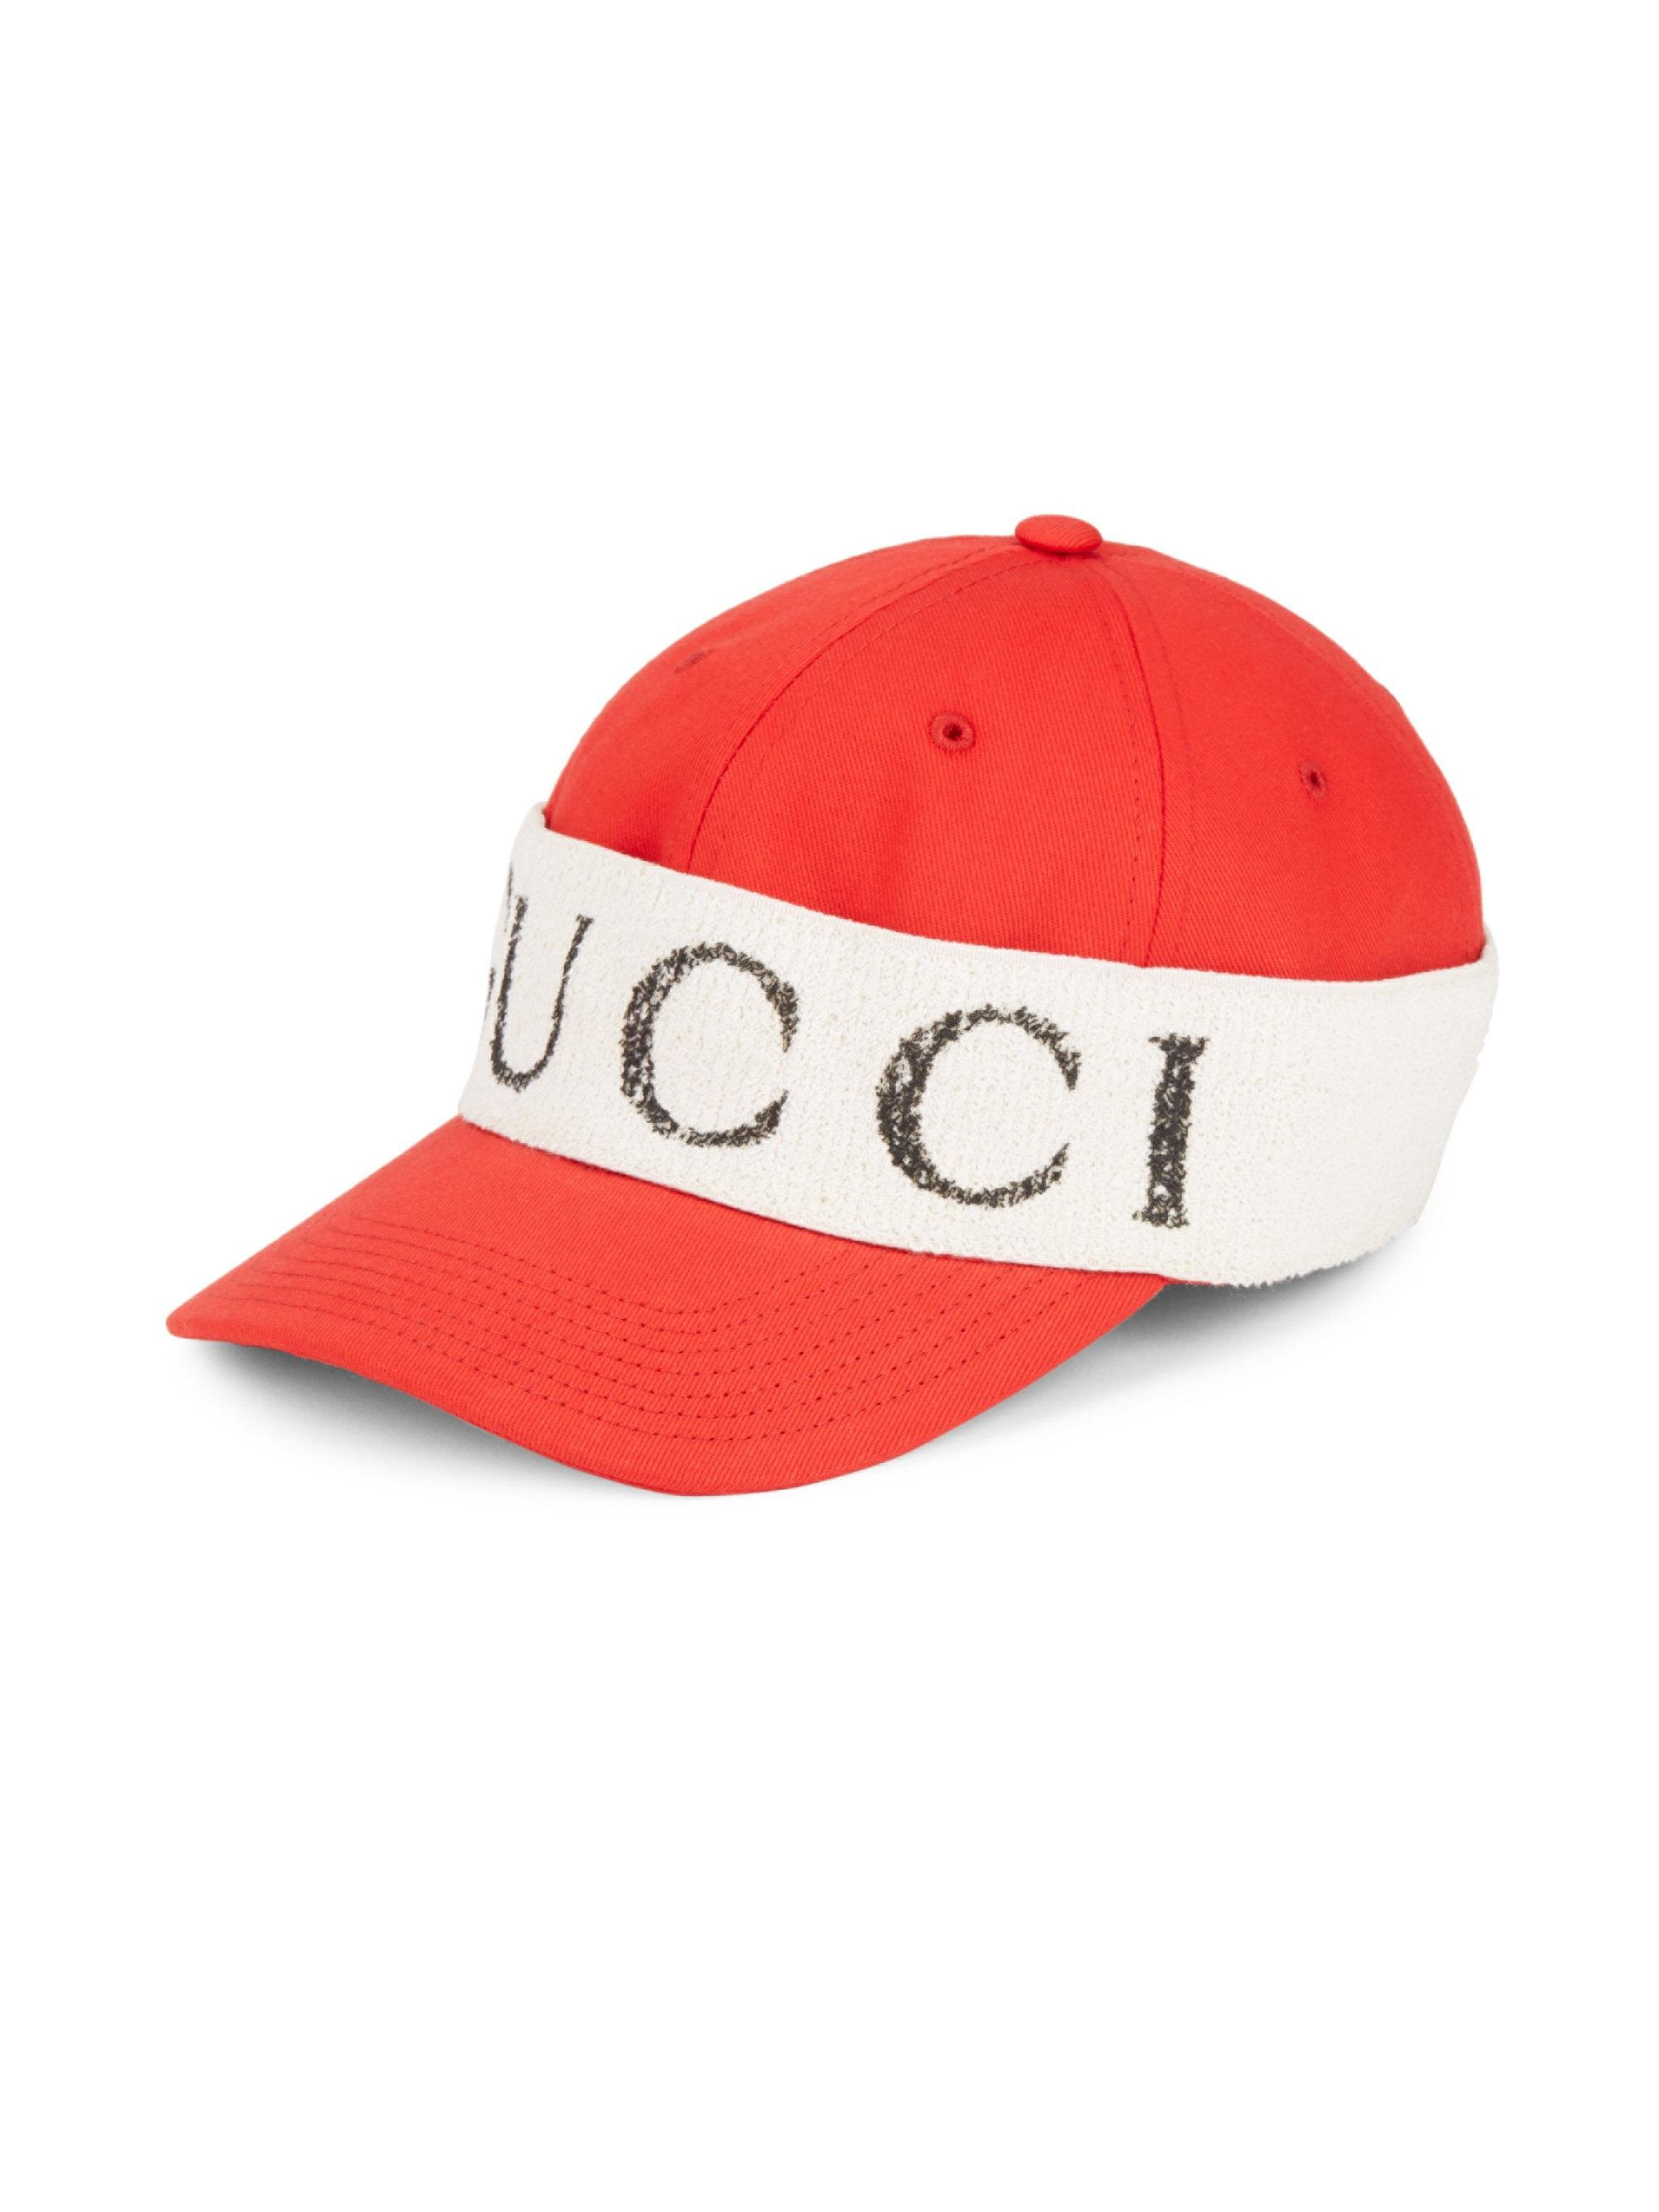 Gucci Wrap Baseball Cap in Red for Men - Lyst 9344e85a49c